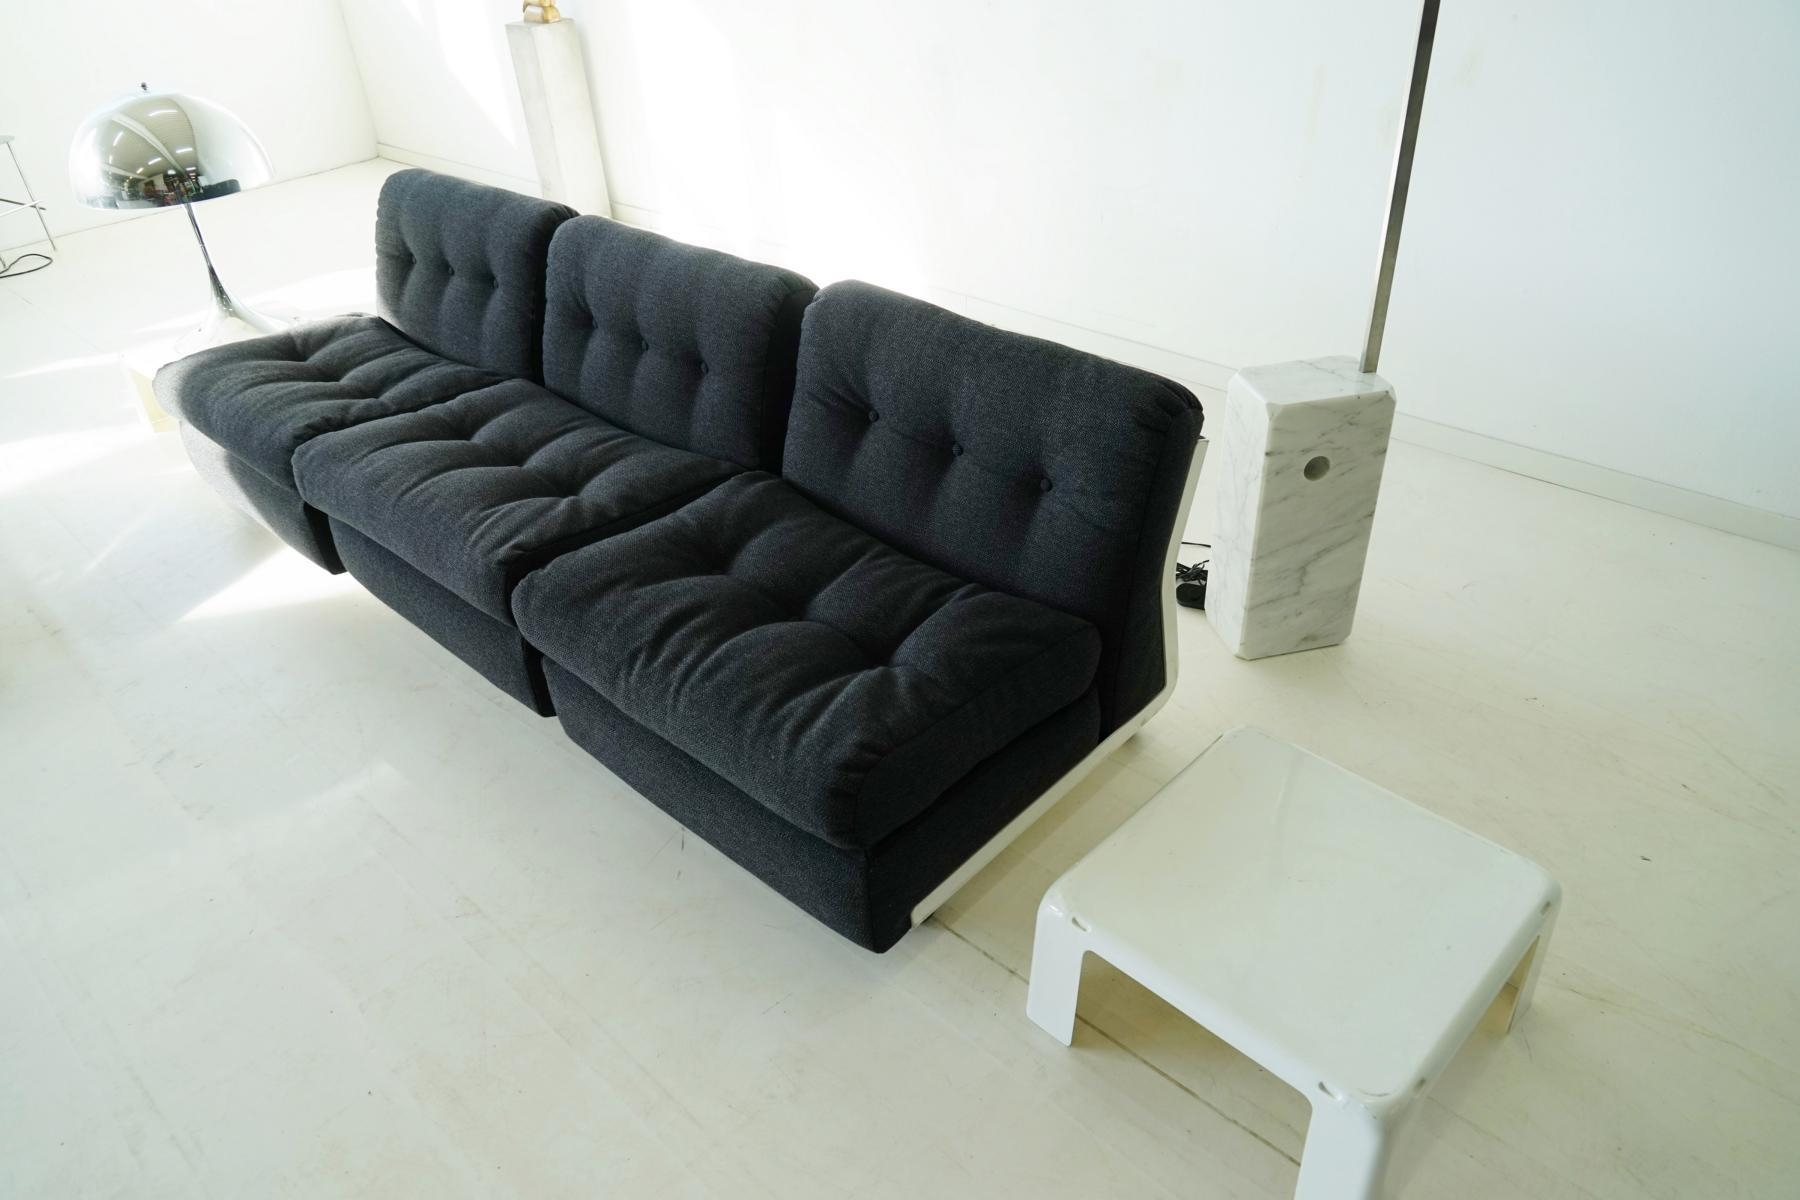 Vintage Modular Amanta Lounge Chair Sofamario Bellini For C&b Pertaining To Bellini Couches (Image 20 of 20)